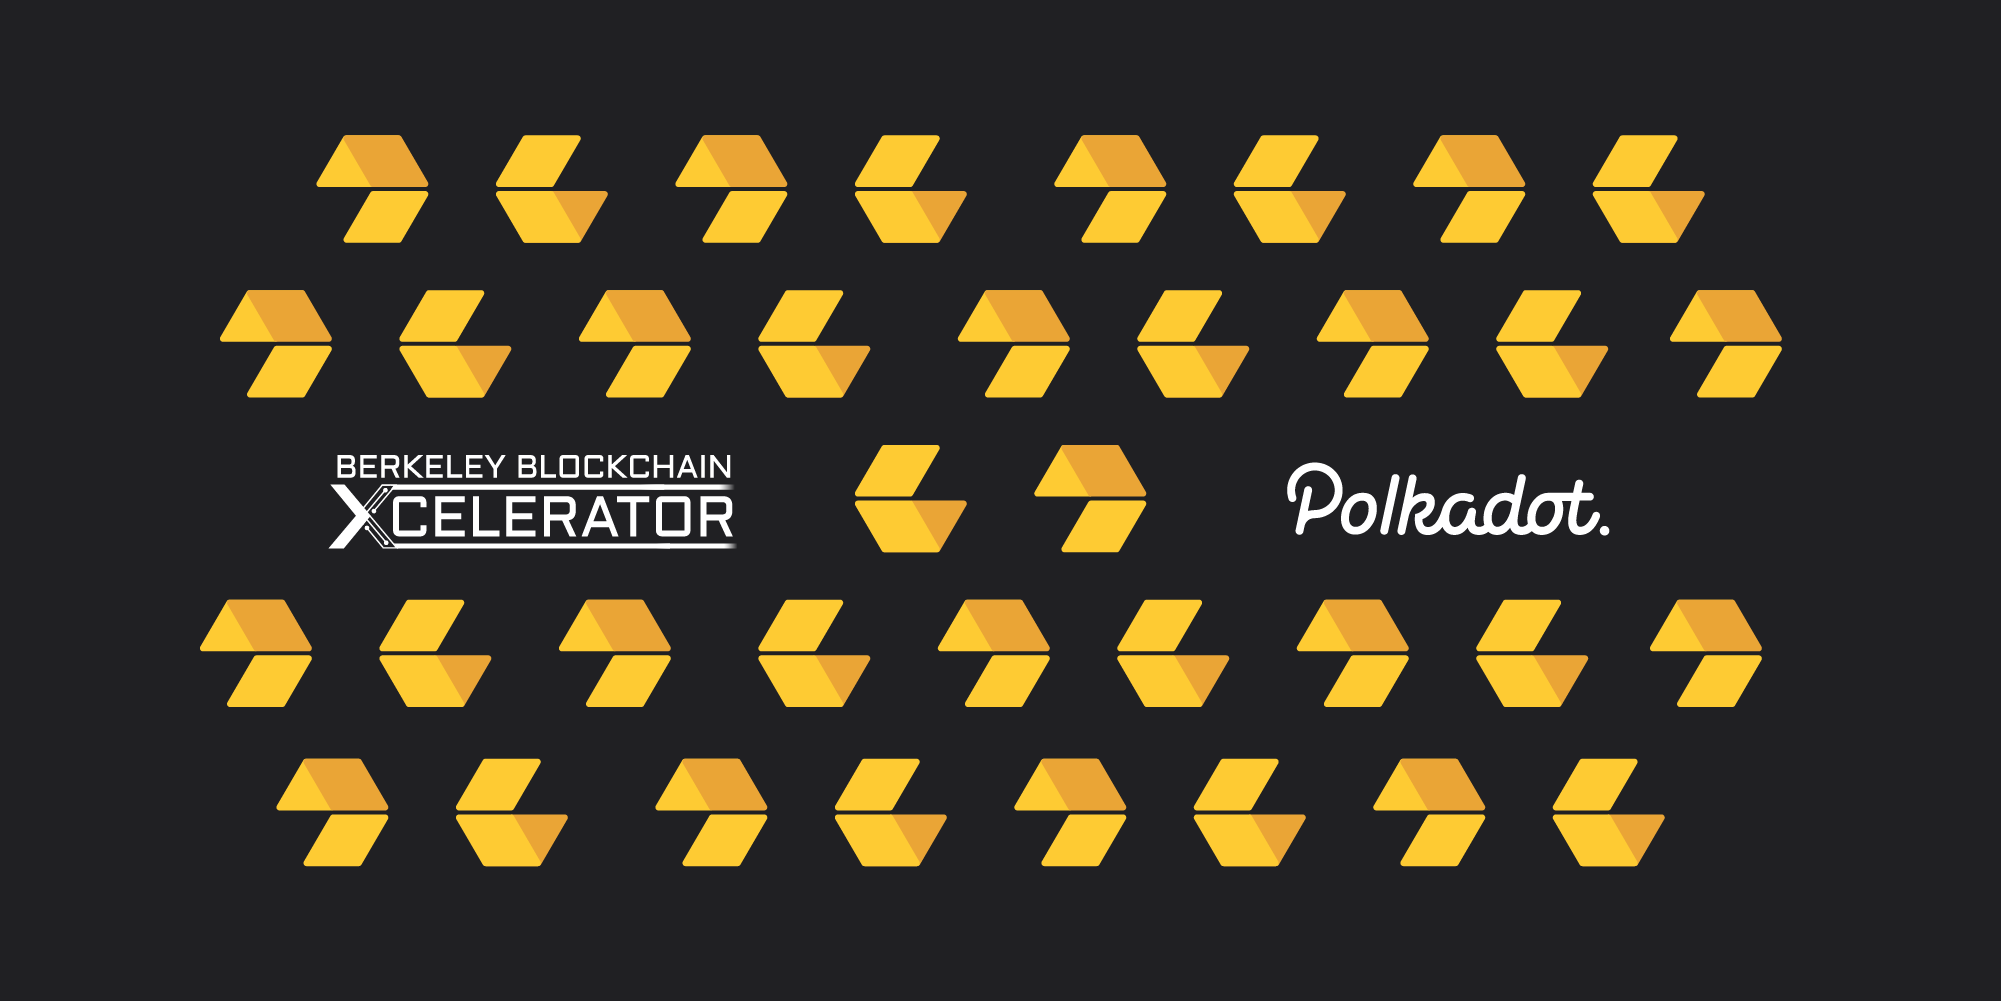 Berkeley Blockchain Xcelerator Selects Four Polkadot Projects for Spring 2020 Cohort